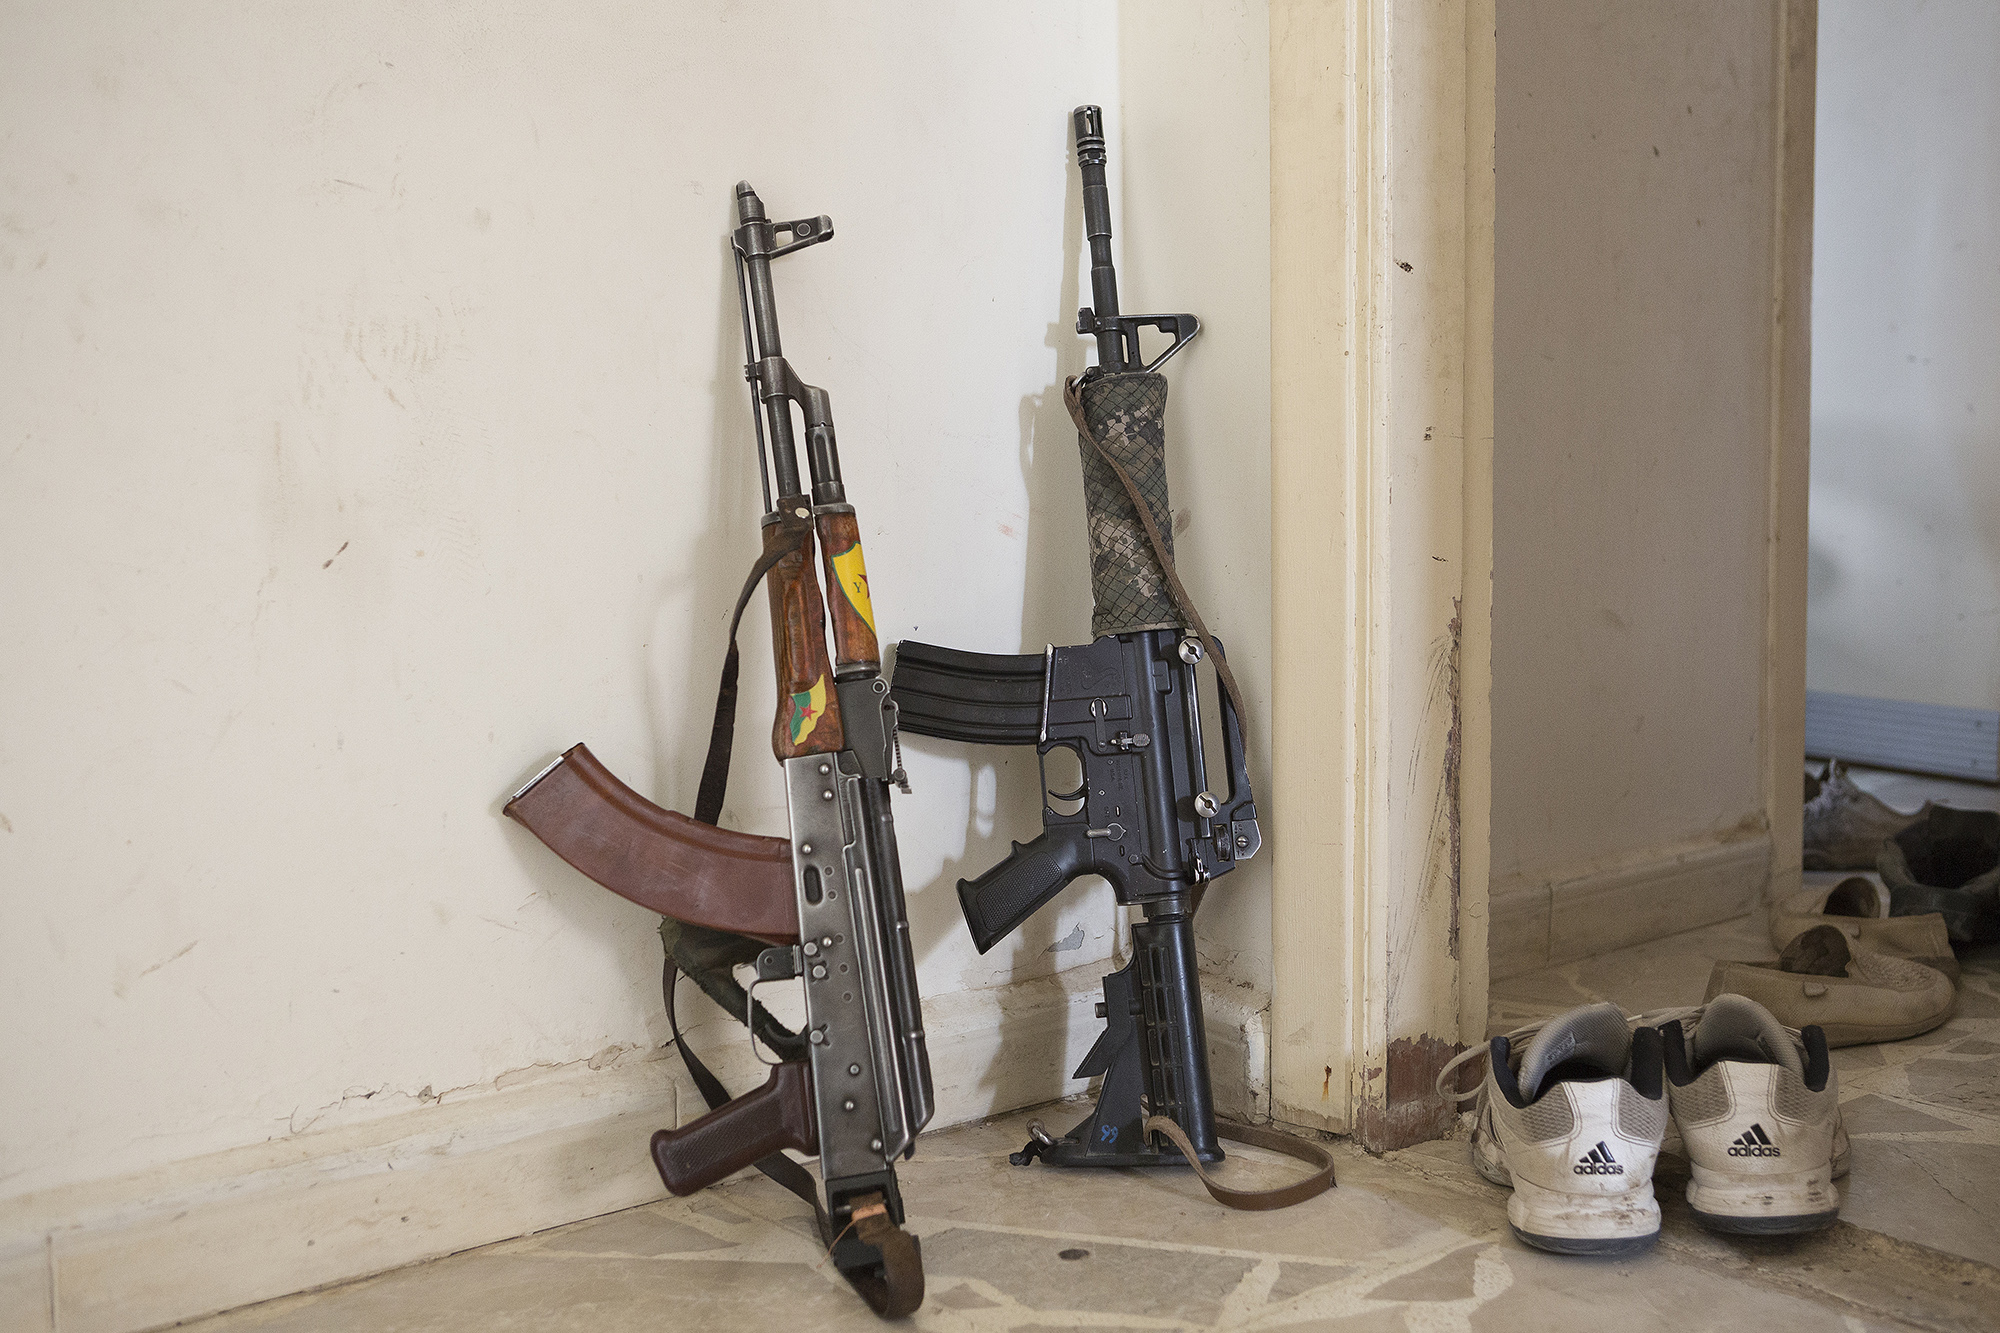 28/09/2014. Al-Yarubiyah, Syria. A Chinese made Kalashnikov and American M4 rifle (the latter captured from ISIS militants) lean against a wall in a building occupied by Syrian Kurdish YPG fighters in Al-Yarubiyah, Syria.